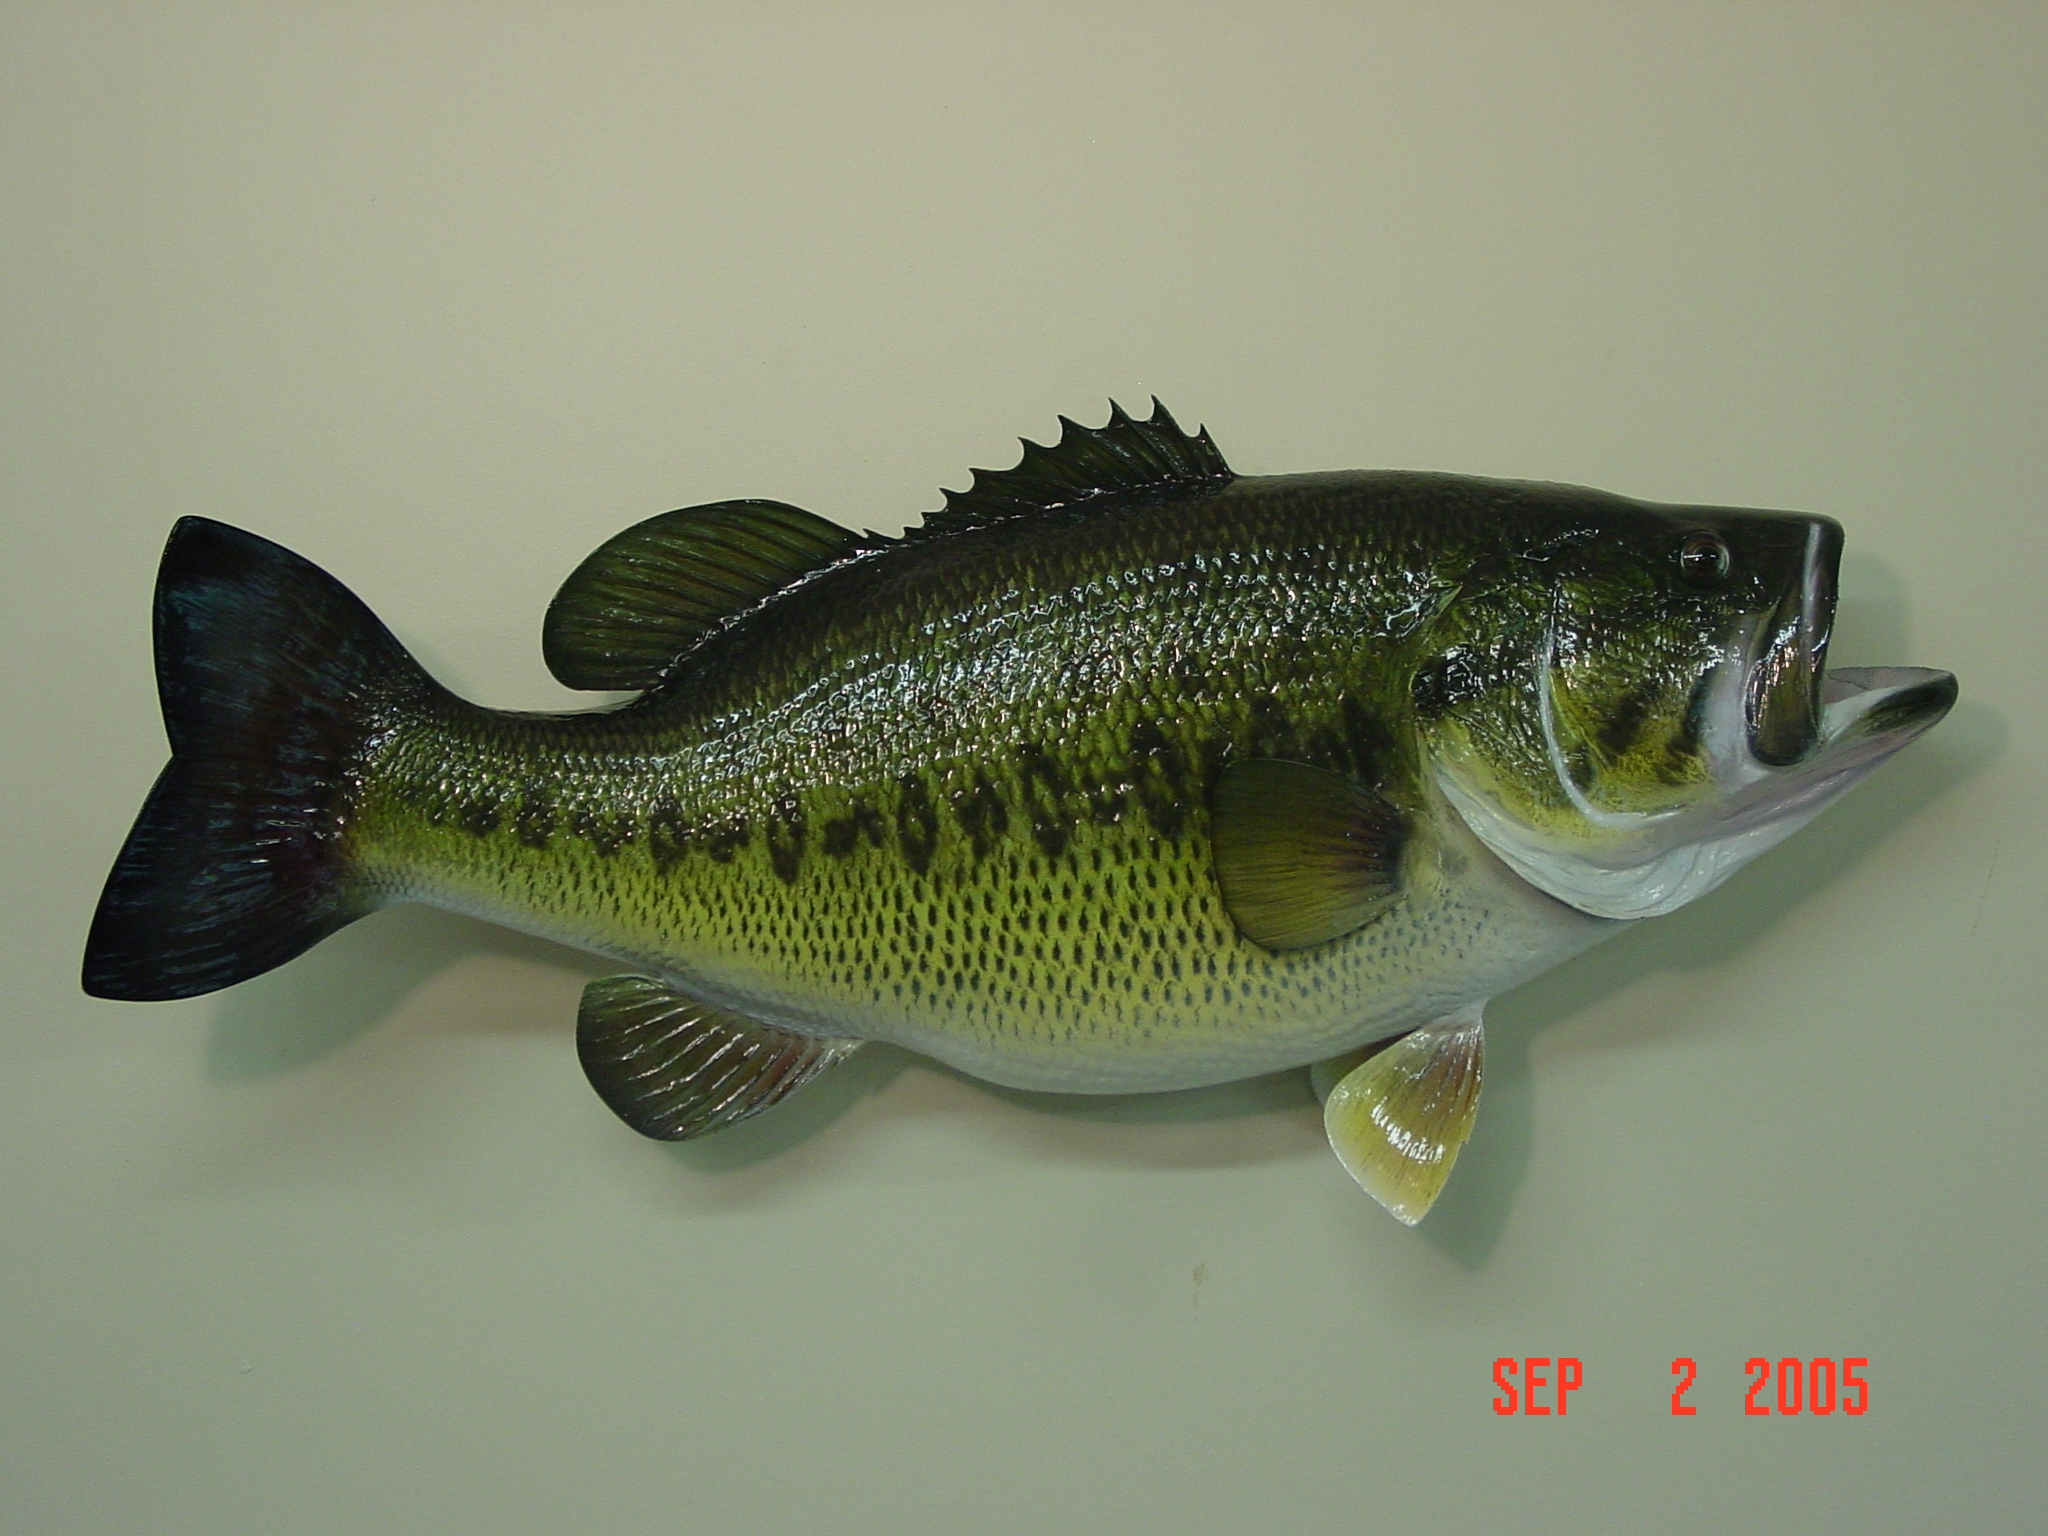 the large mouth bass